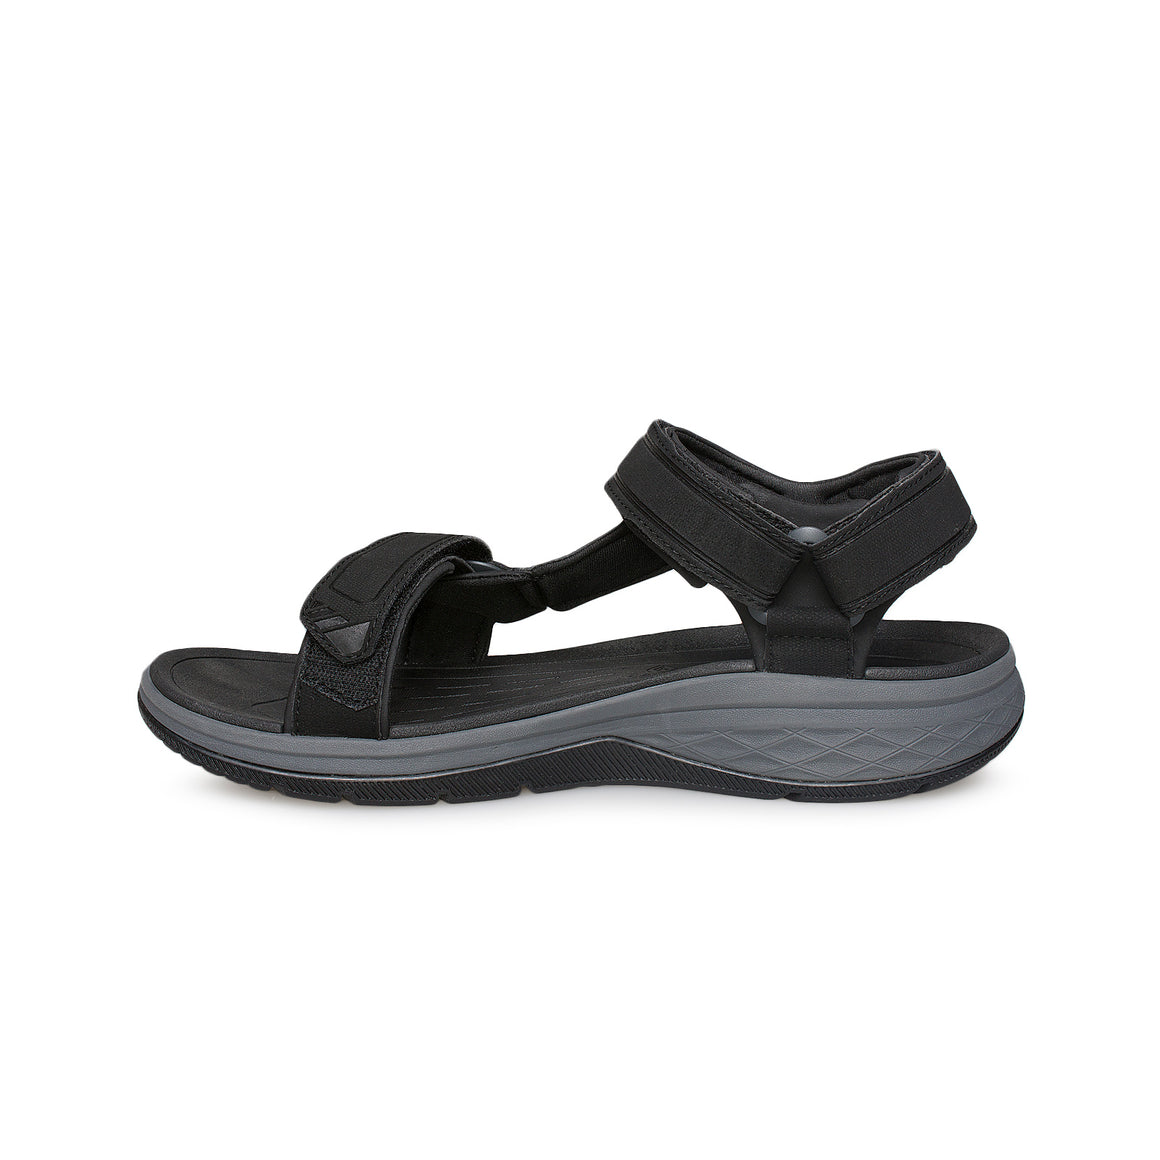 Teva Strata Universal Black Sandals - Men's